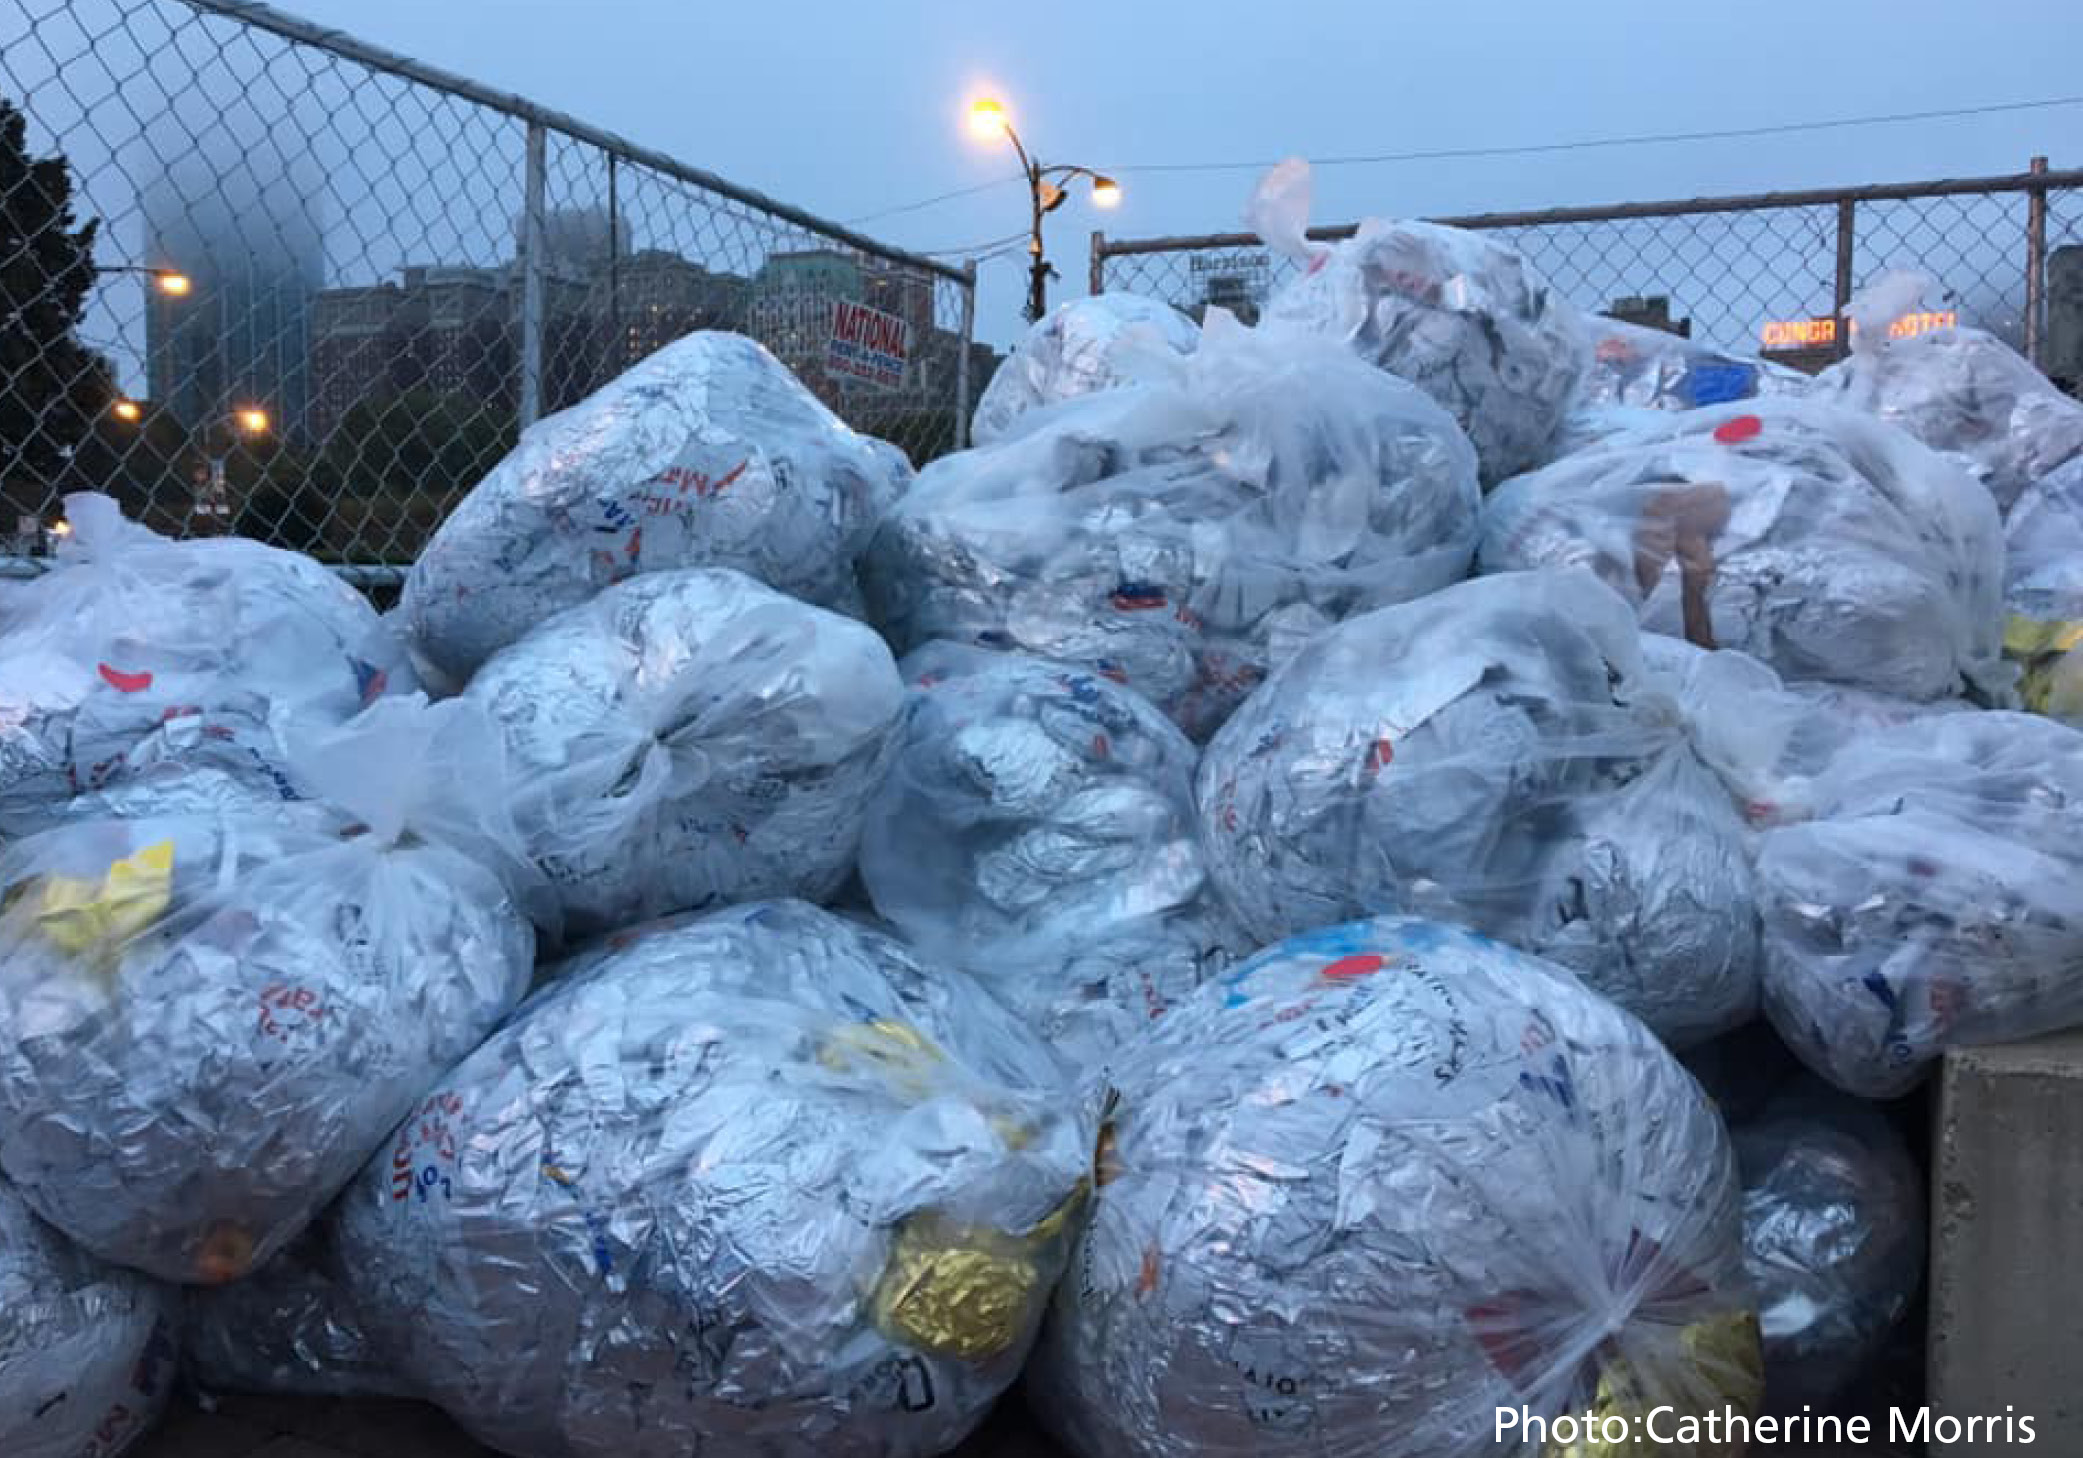 As dusk settles in after the running of the 2018 Bank of America Chicago Marathon on October 7, insulation blankets by Heatsheets have been collected and bagged, ready to be recycled into a bench to be donated to a Chicago park nearby.